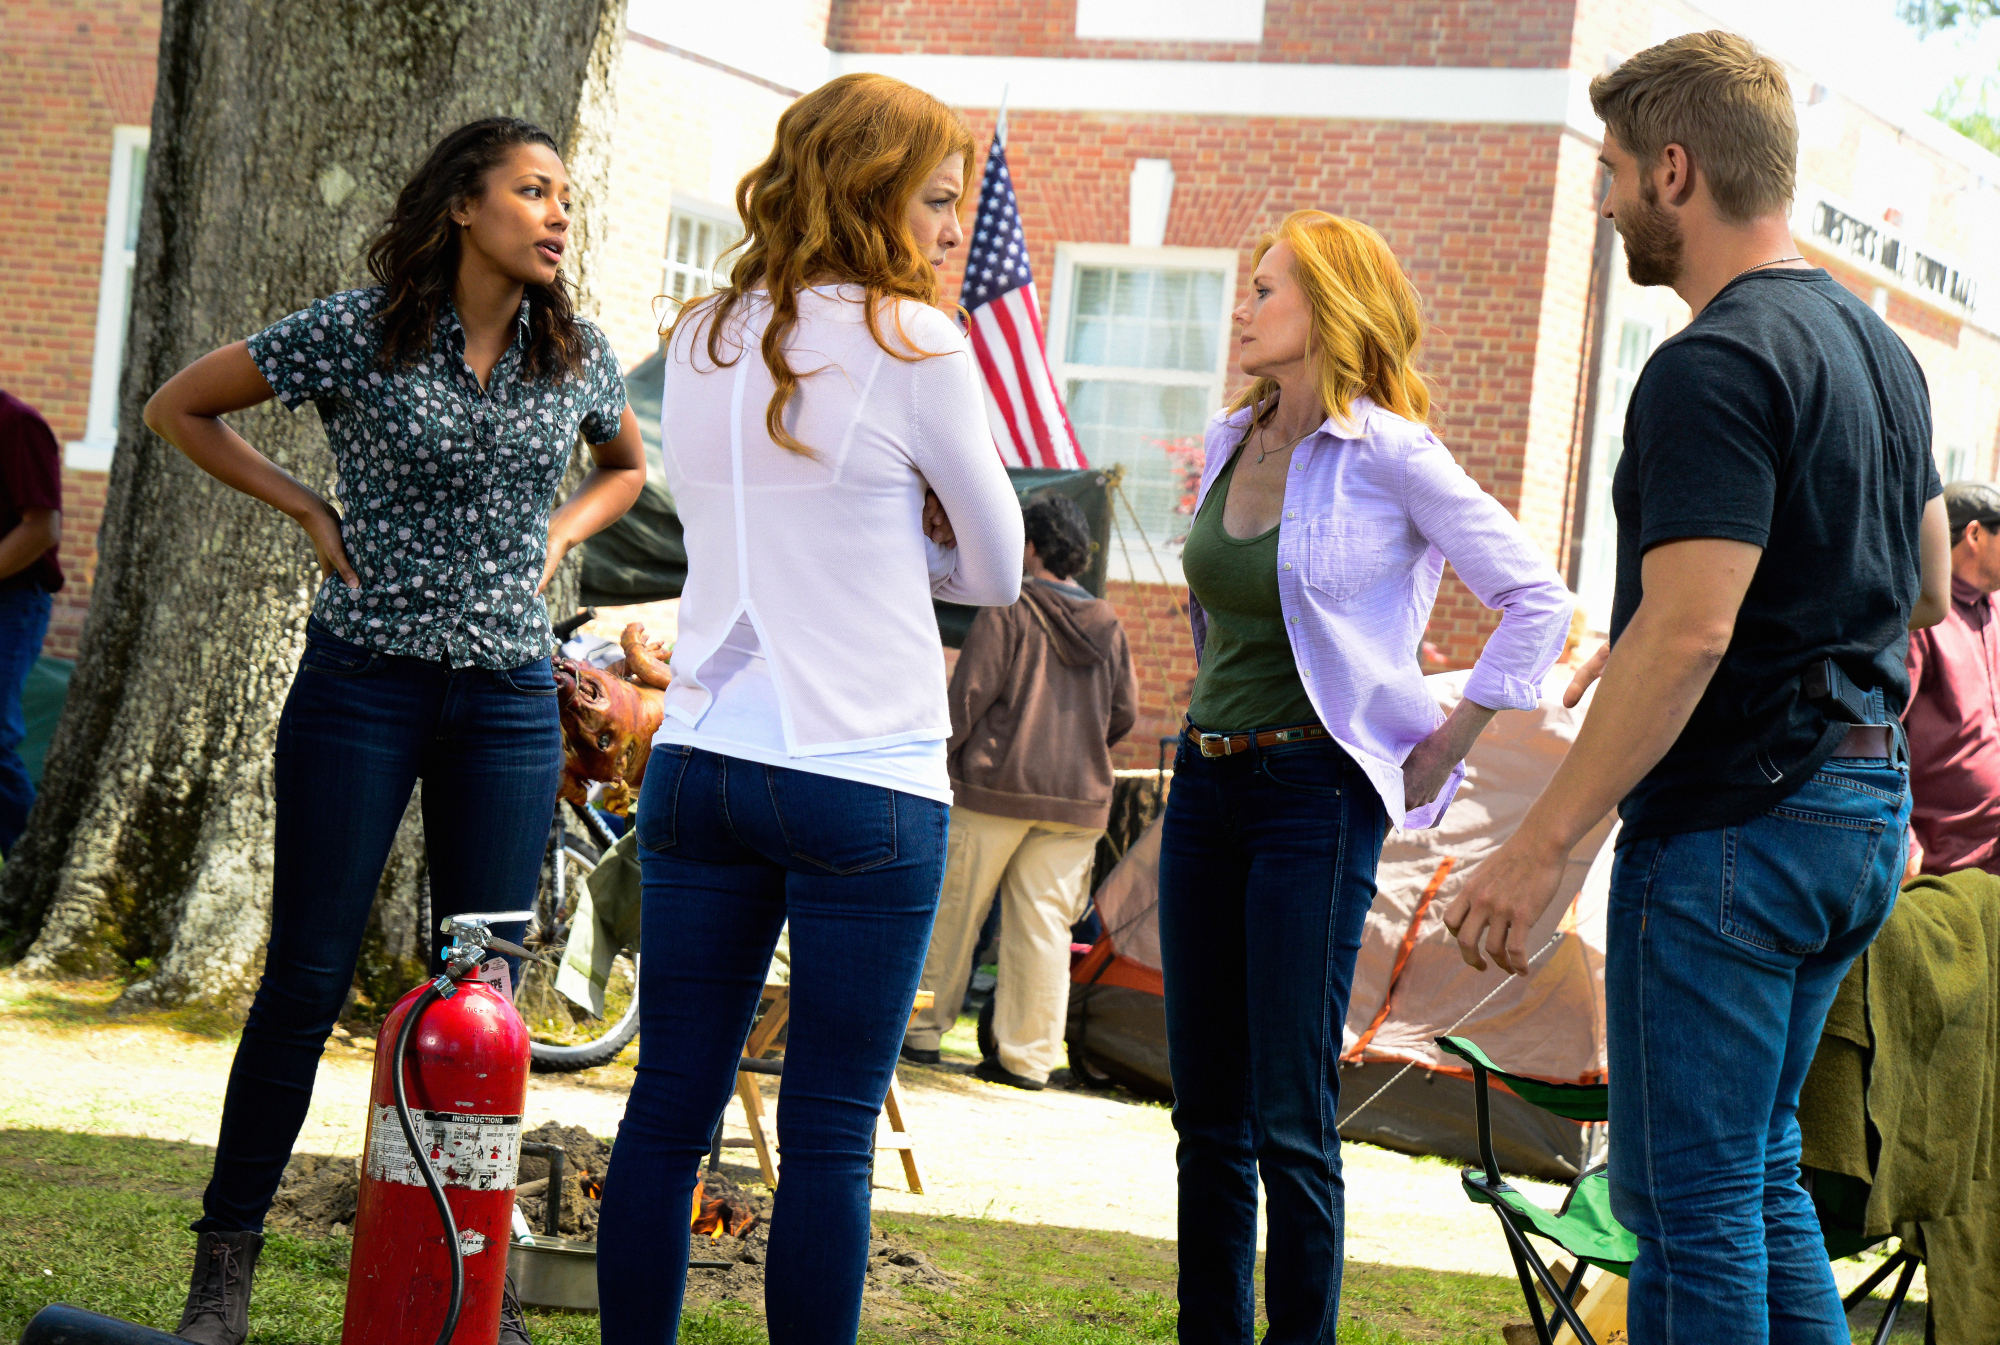 Kylie Bunbury as Eva Sinclair, Rachelle Lefevre as Julia Shumway, Marg Helgenberger as Christine Price, and Mike Vogel as Dale